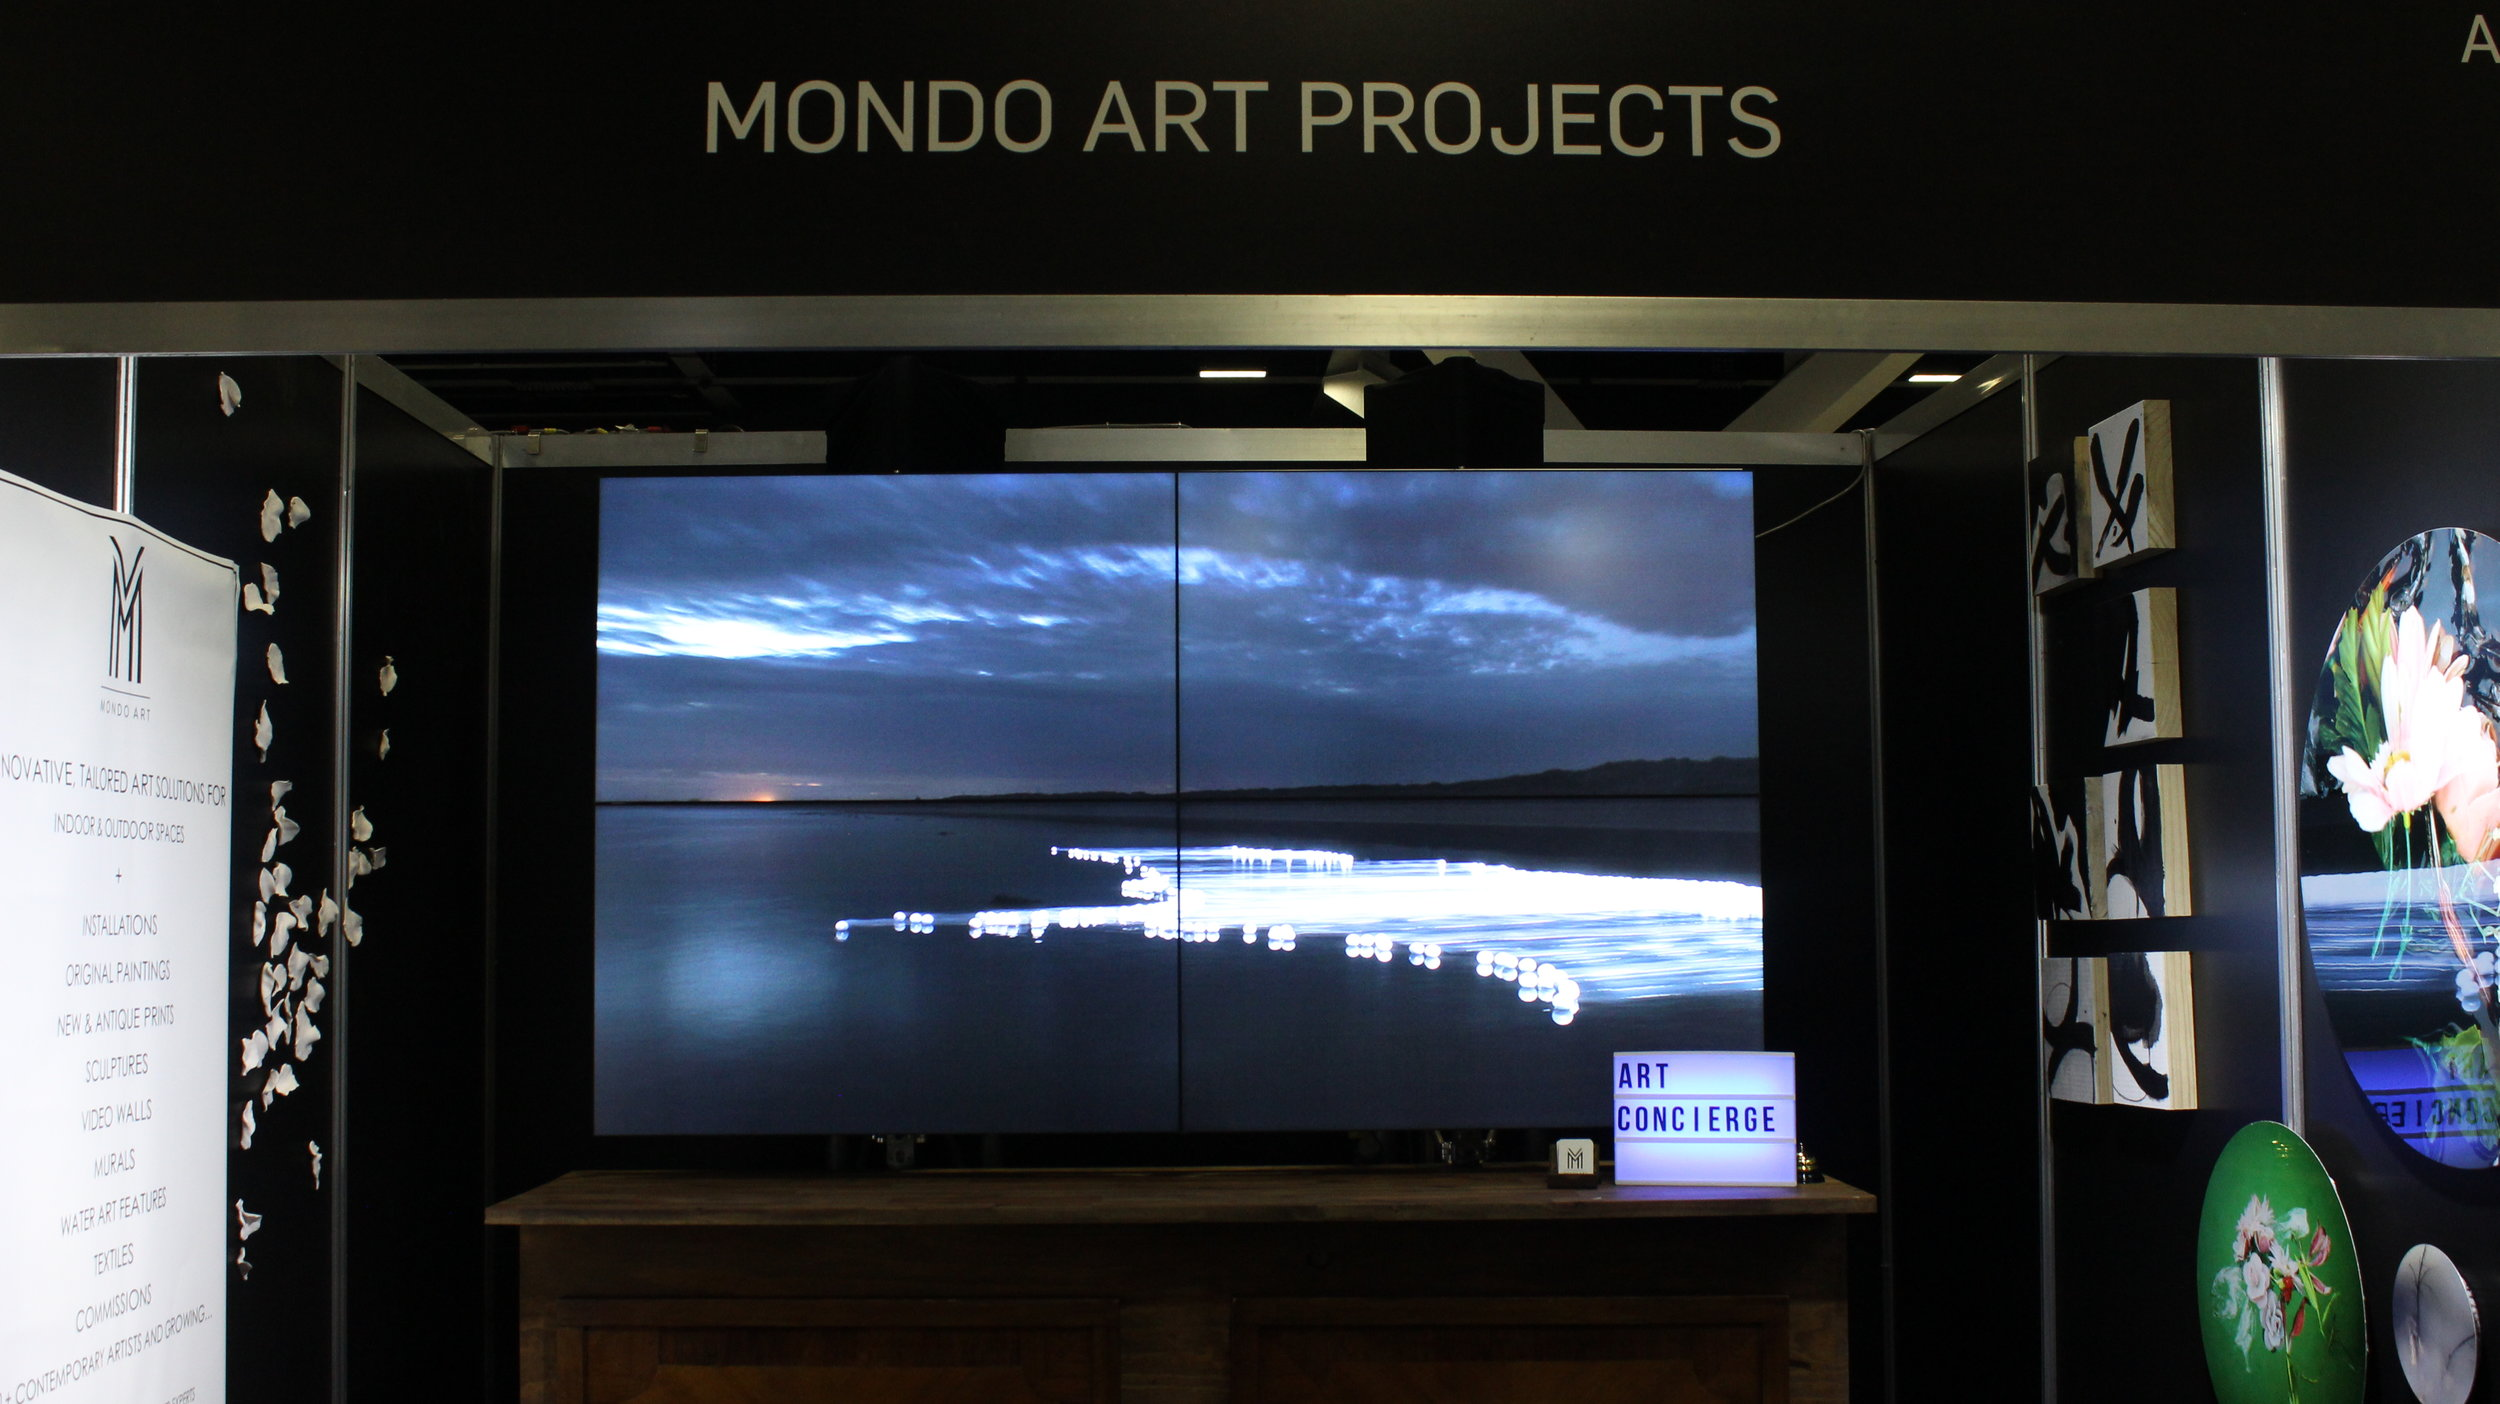 MONDO Art Projects' stand with the largest video wall we could find. Displayed is James Tapscott's and hanging alongside it is Kim Percy with her series of photographs printed onto metal discs.